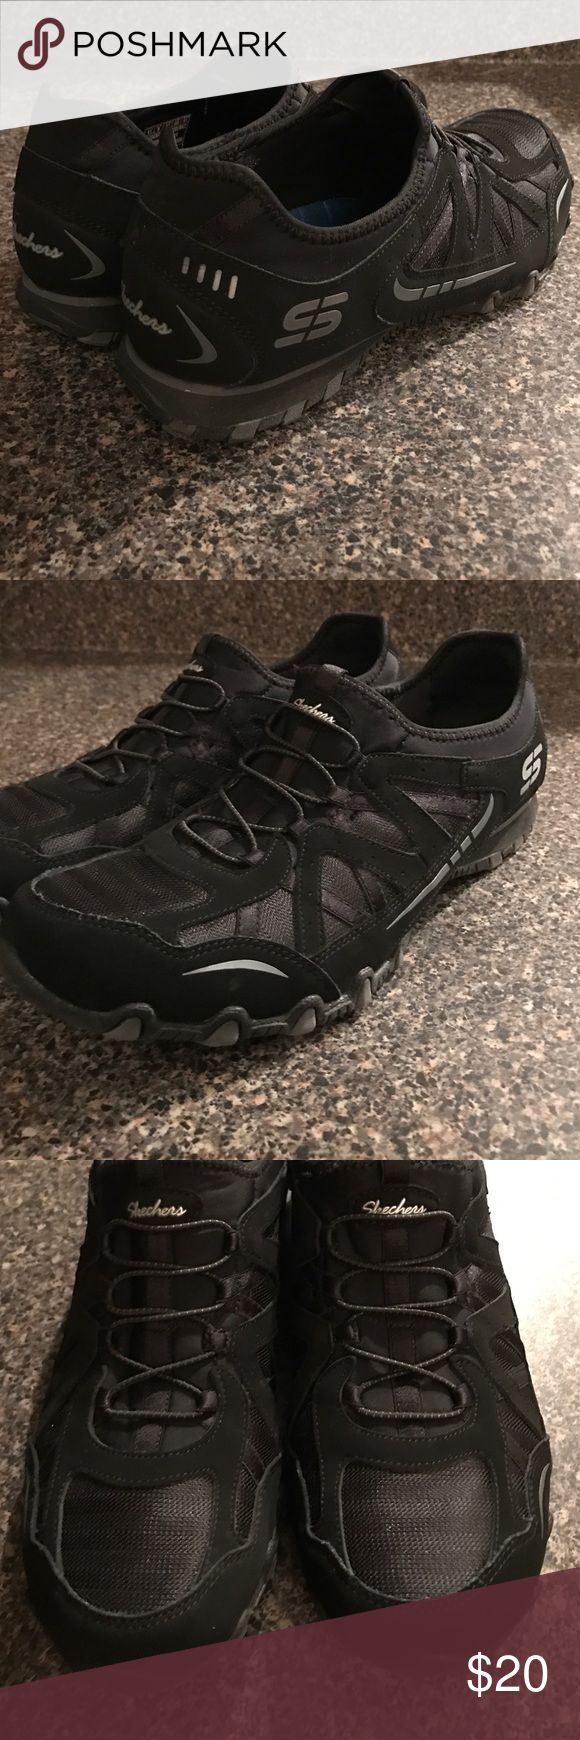 Skechers Sneakers Skechers Sneakers, These Sneakers has been worn few times since I am not a sneaker girl & displays signs of wear but are in very good condition & have been very well cared for. Skechers Shoes Sneakers